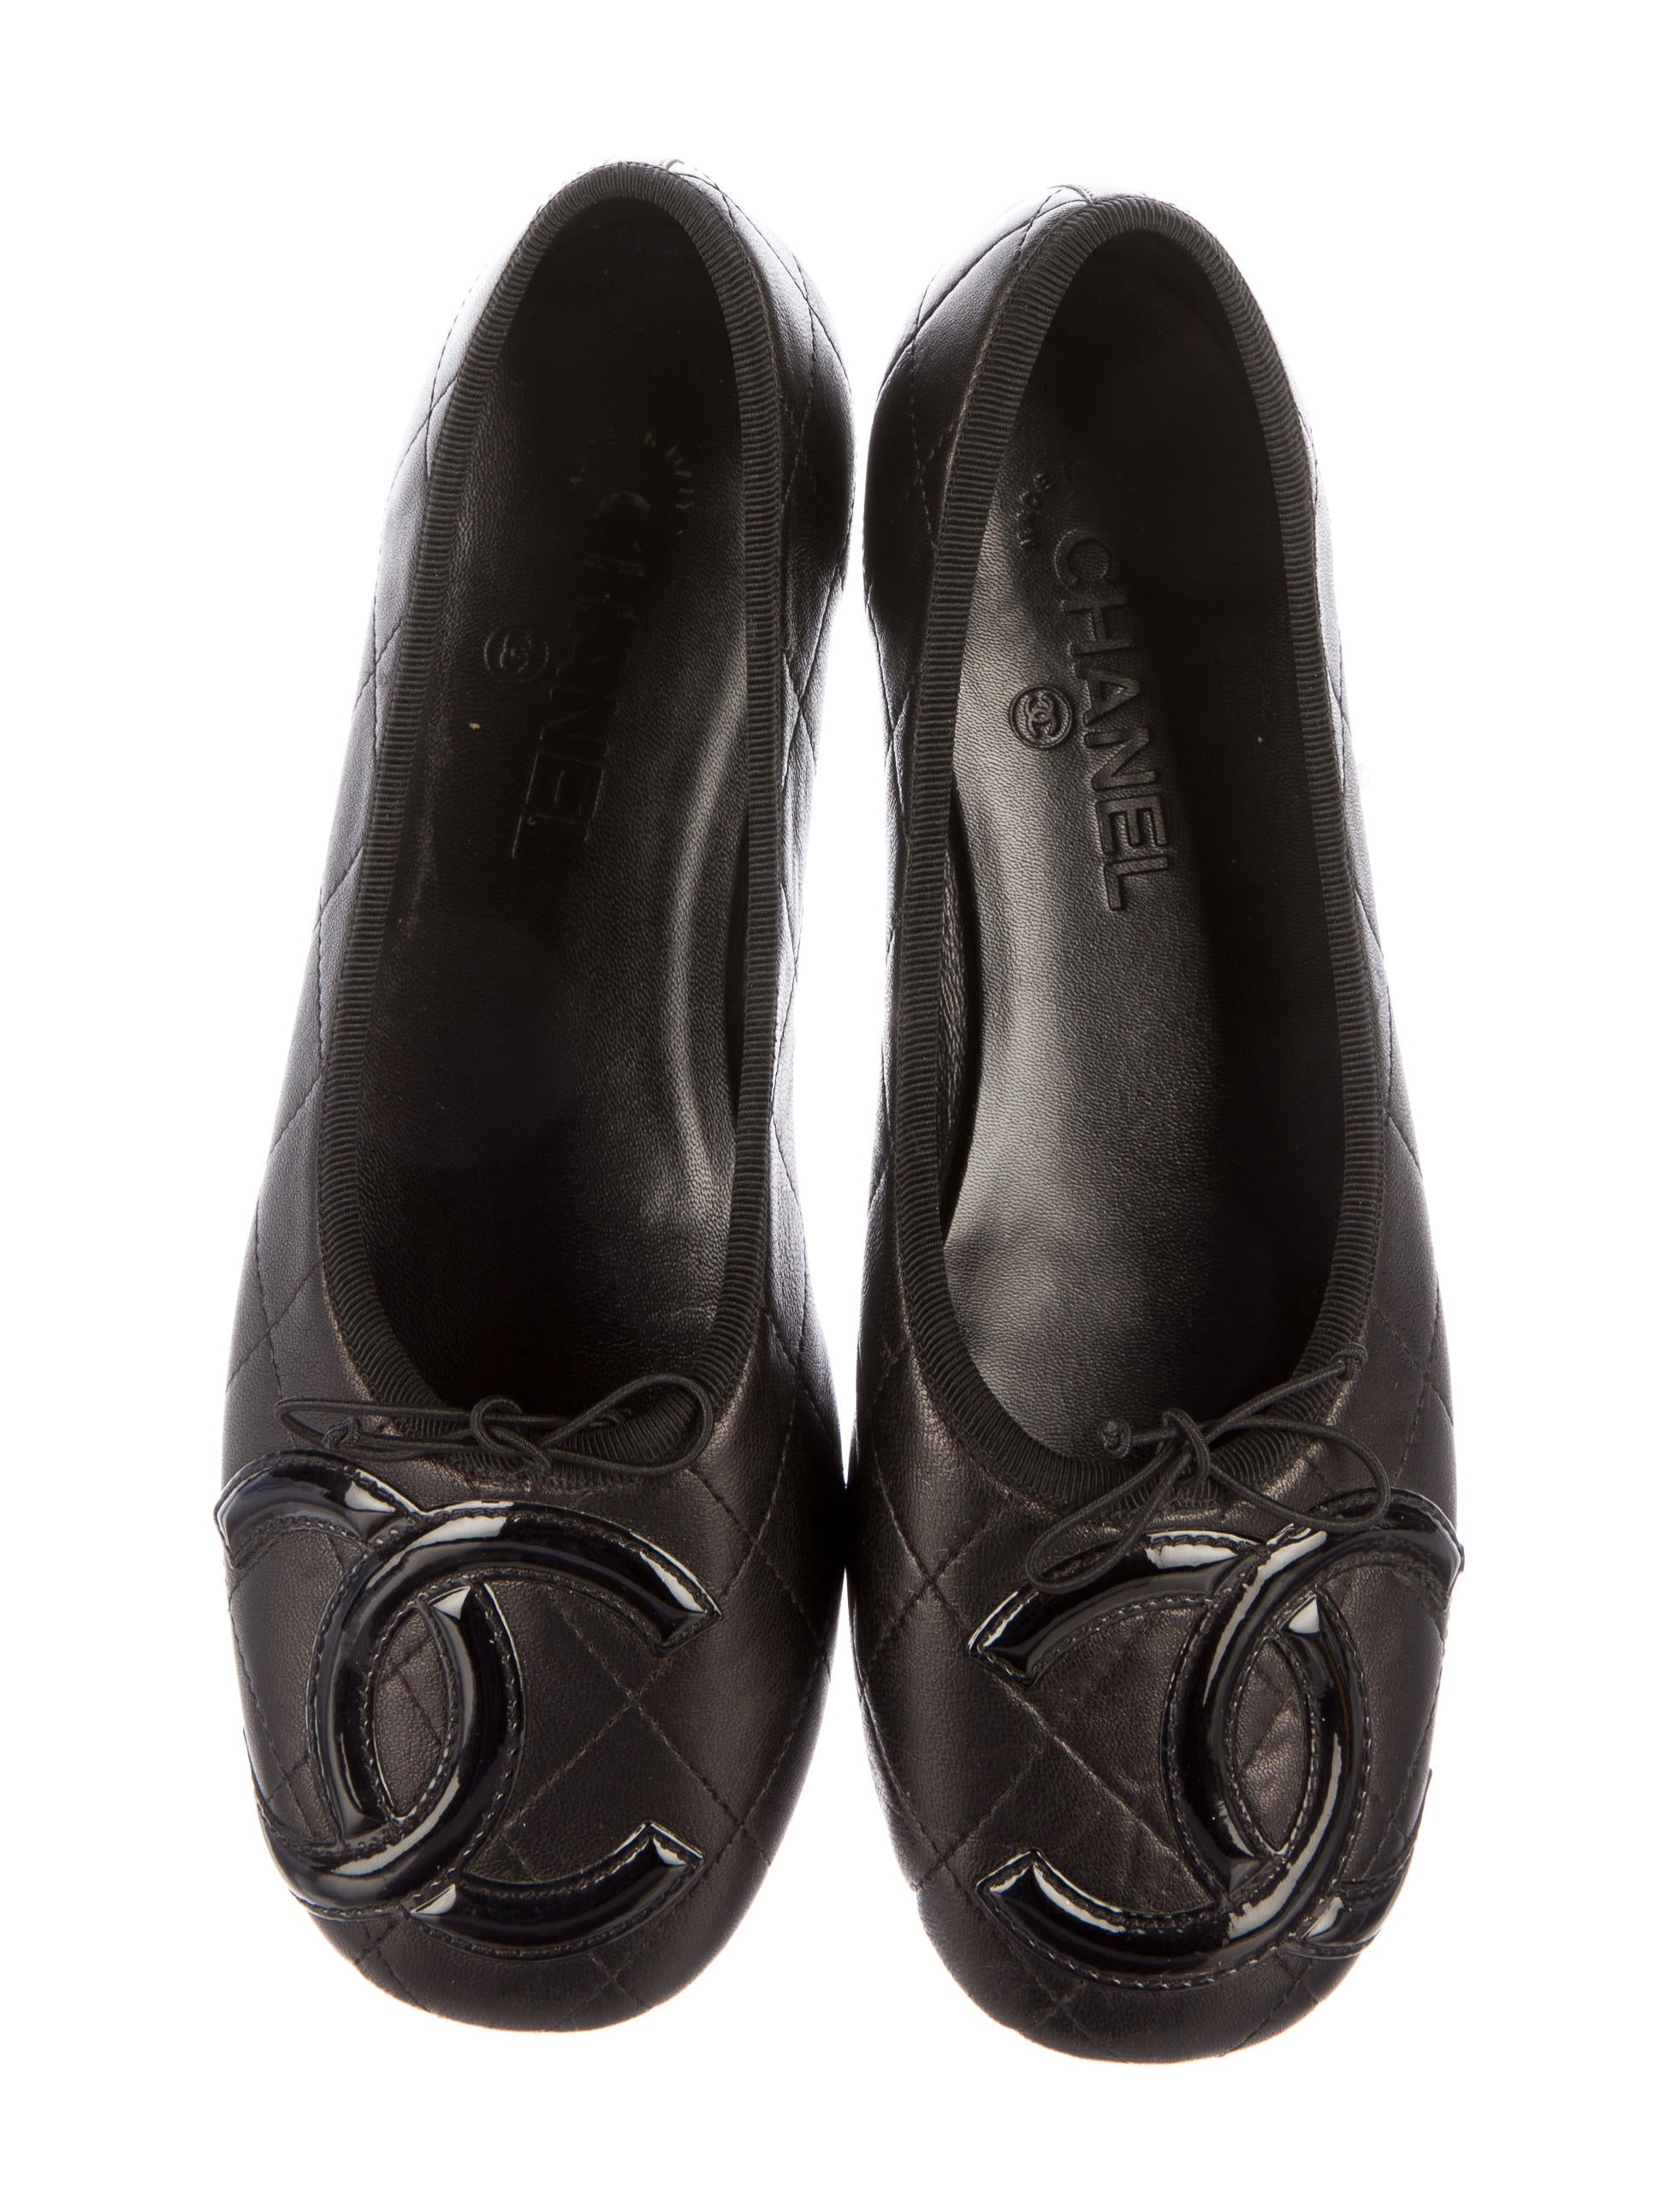 Chanel Ligne Cambon Flats Shoes Cha160271 The Realreal